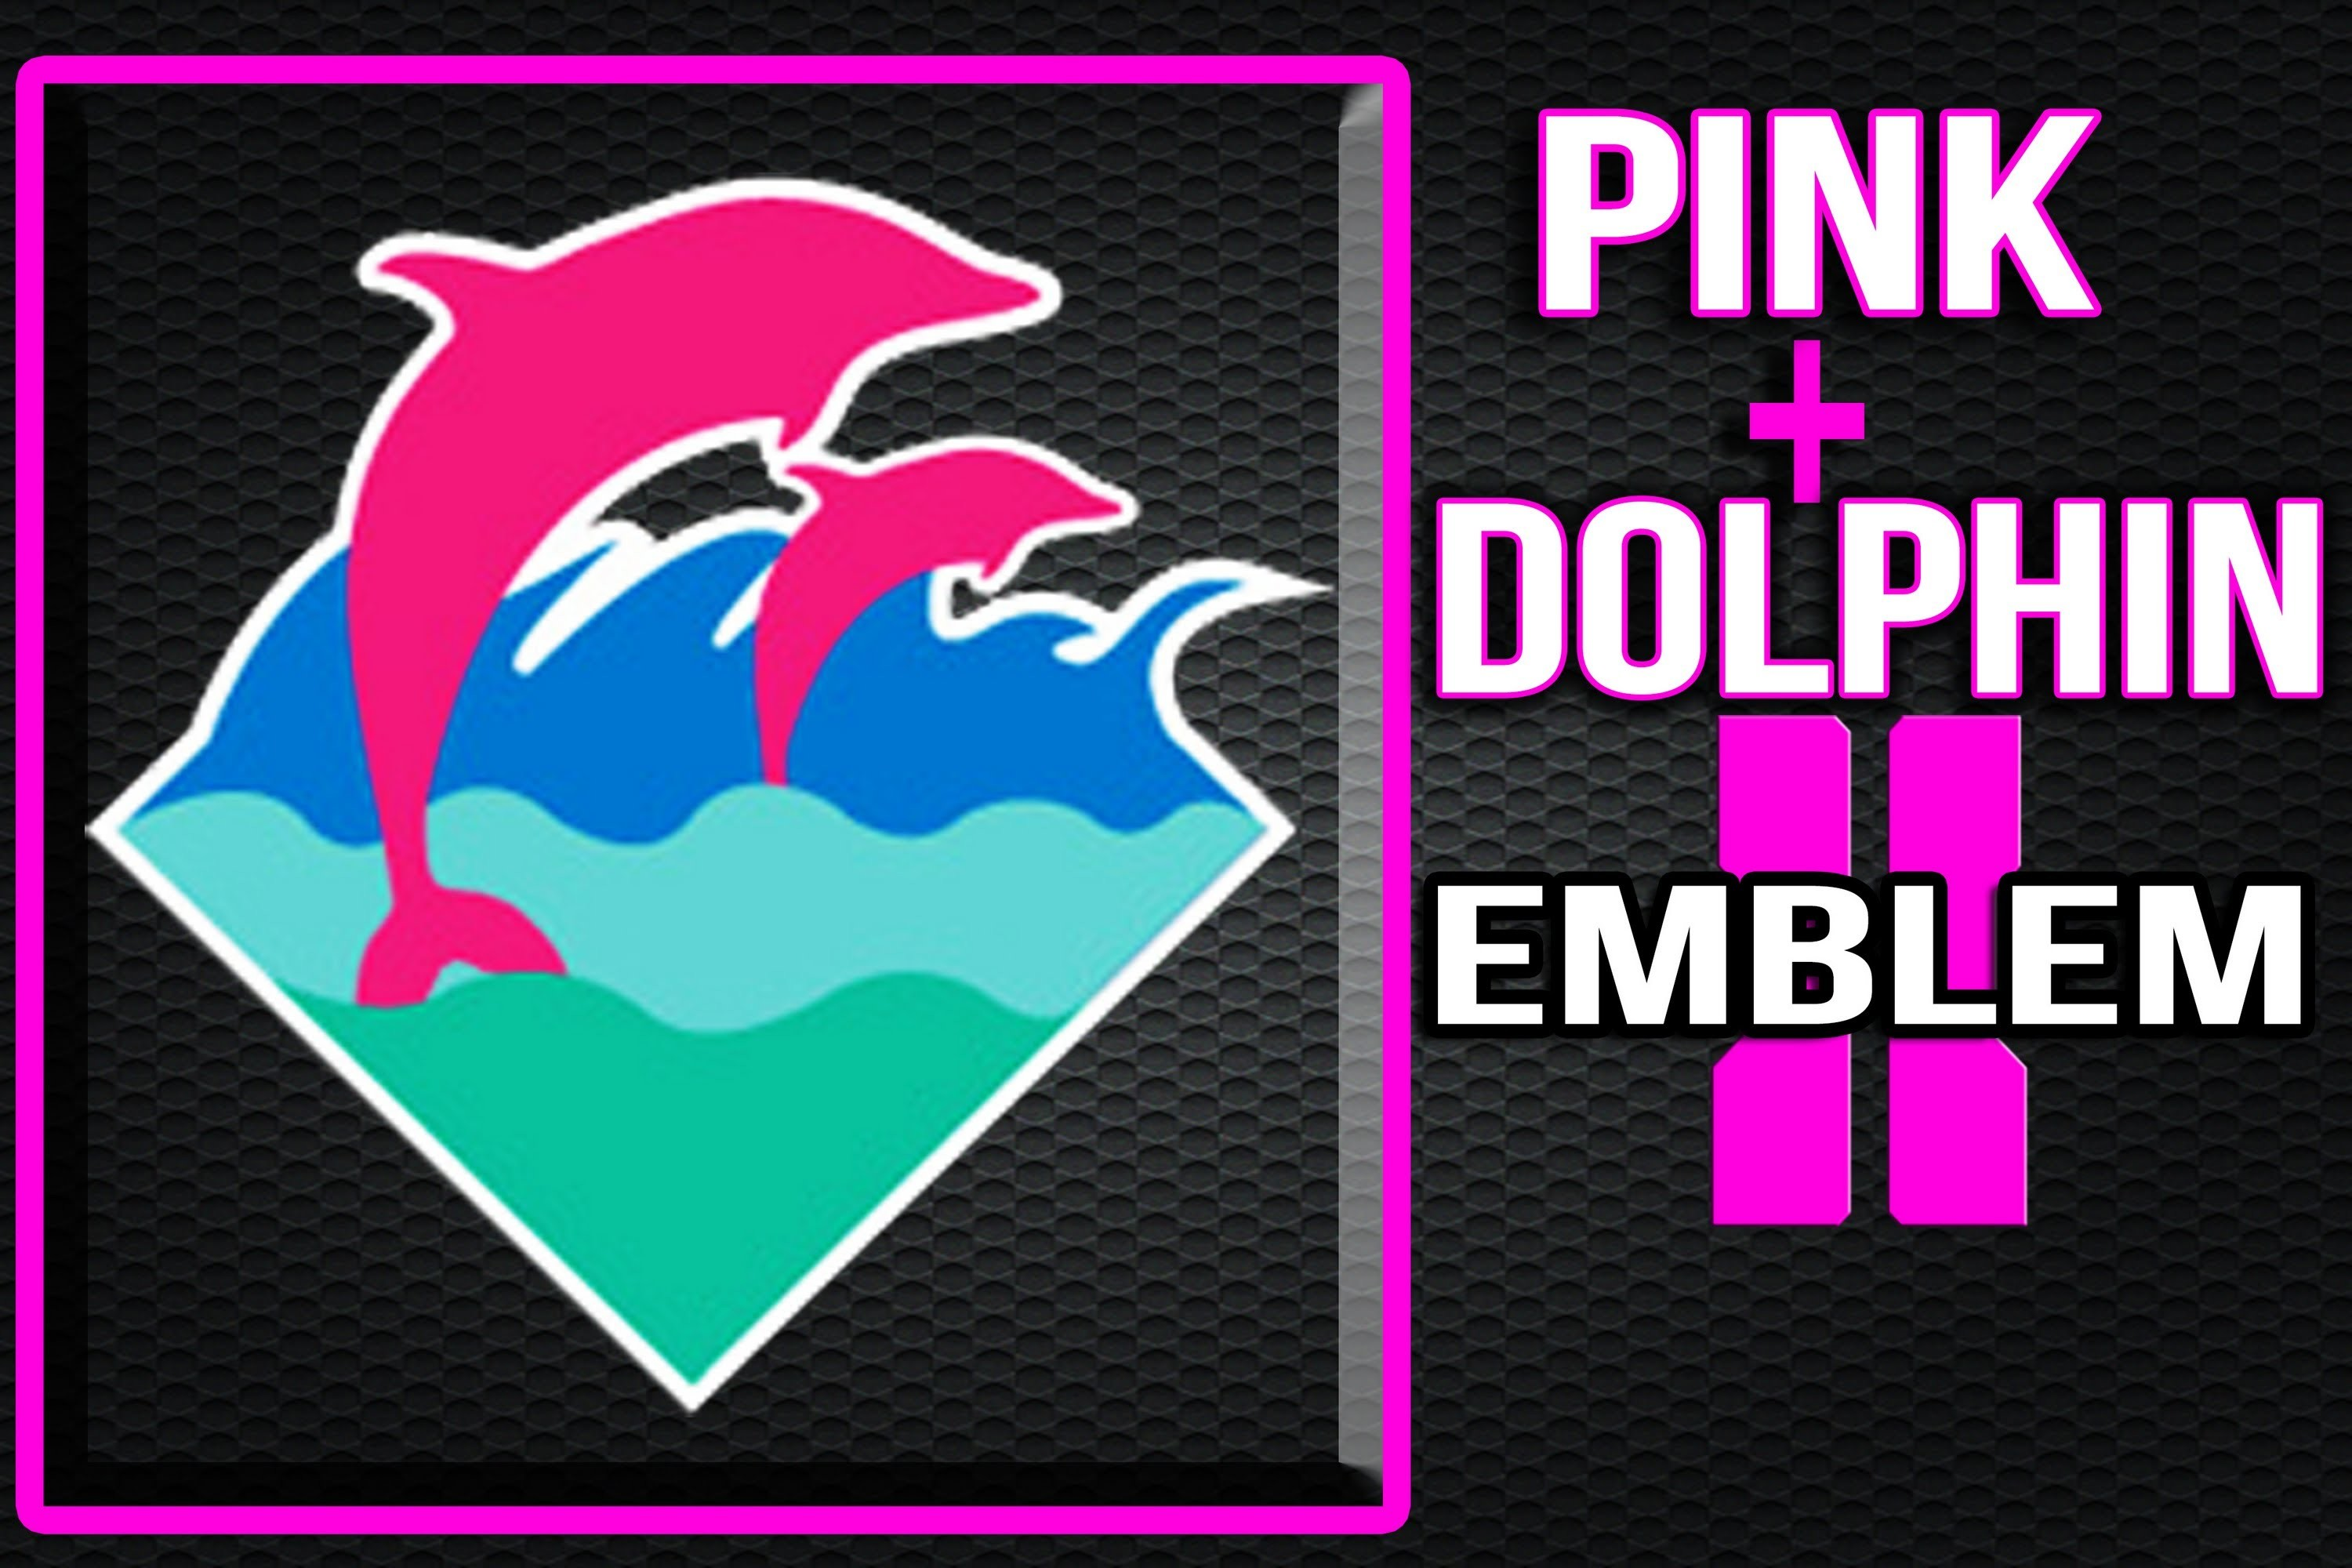 3000x2000 Pink dolphin clothing logo - photo#17